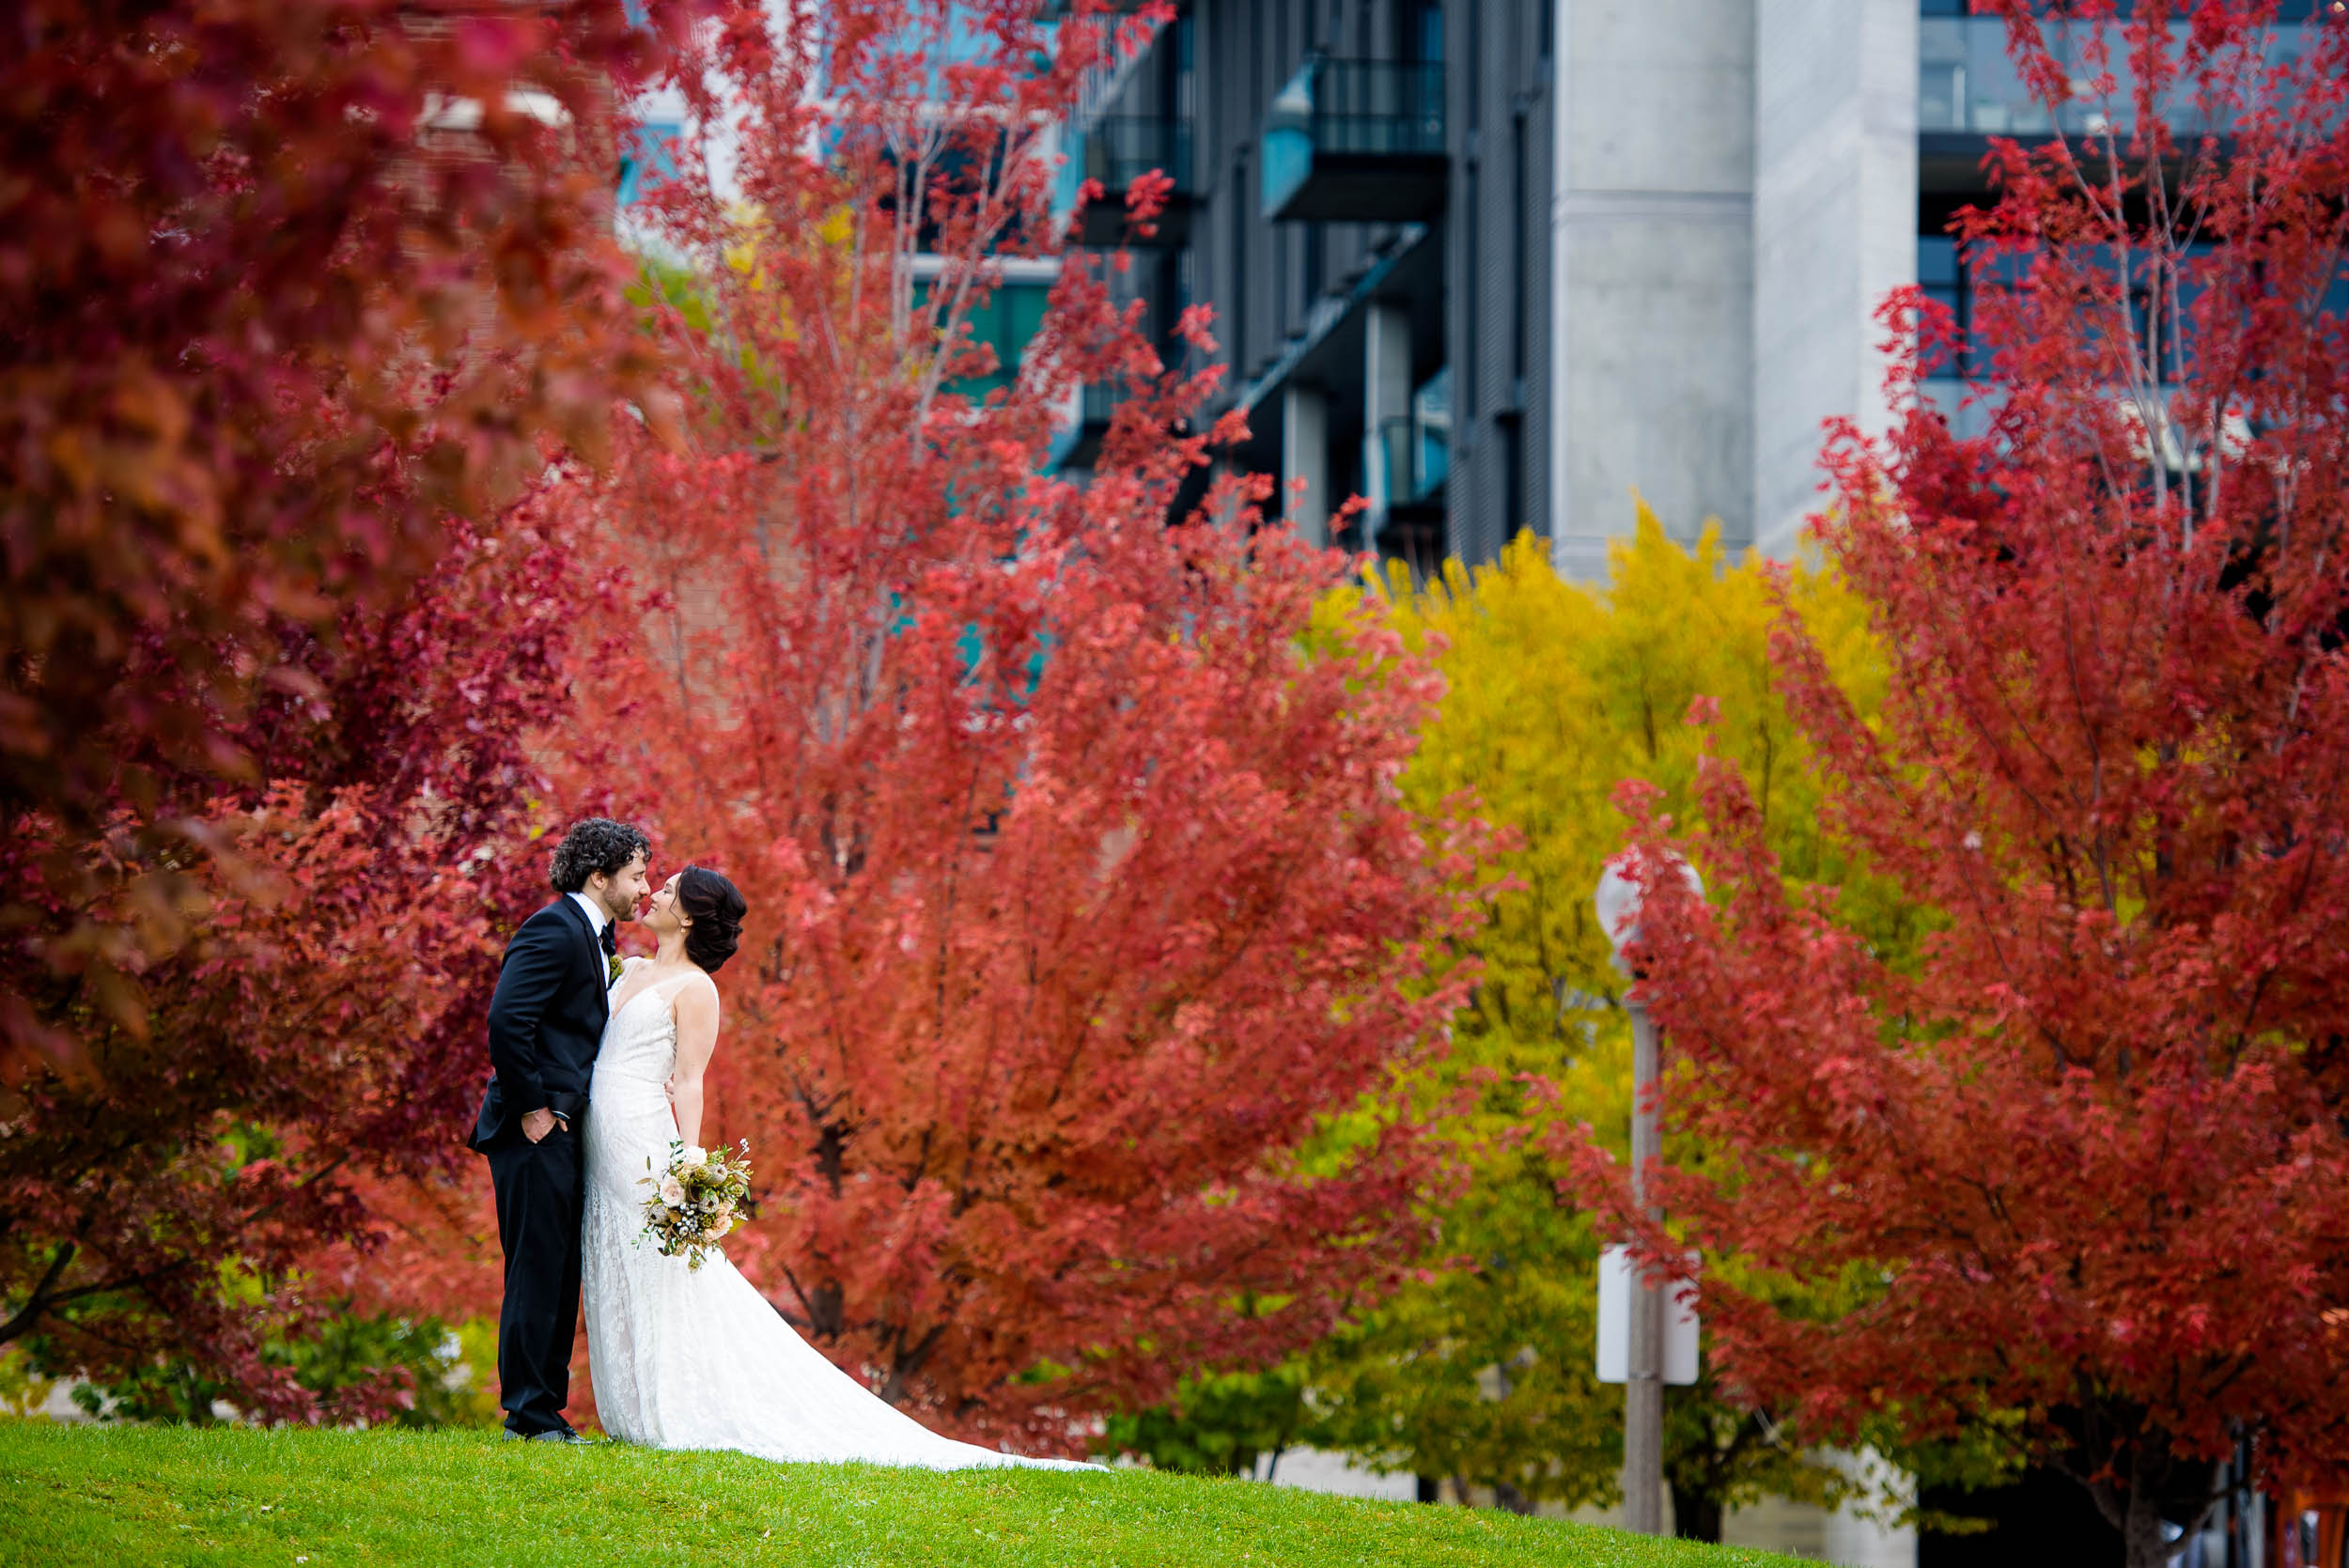 Bride and groom kiss amongst the fall colors at Mary Bartelme Park.